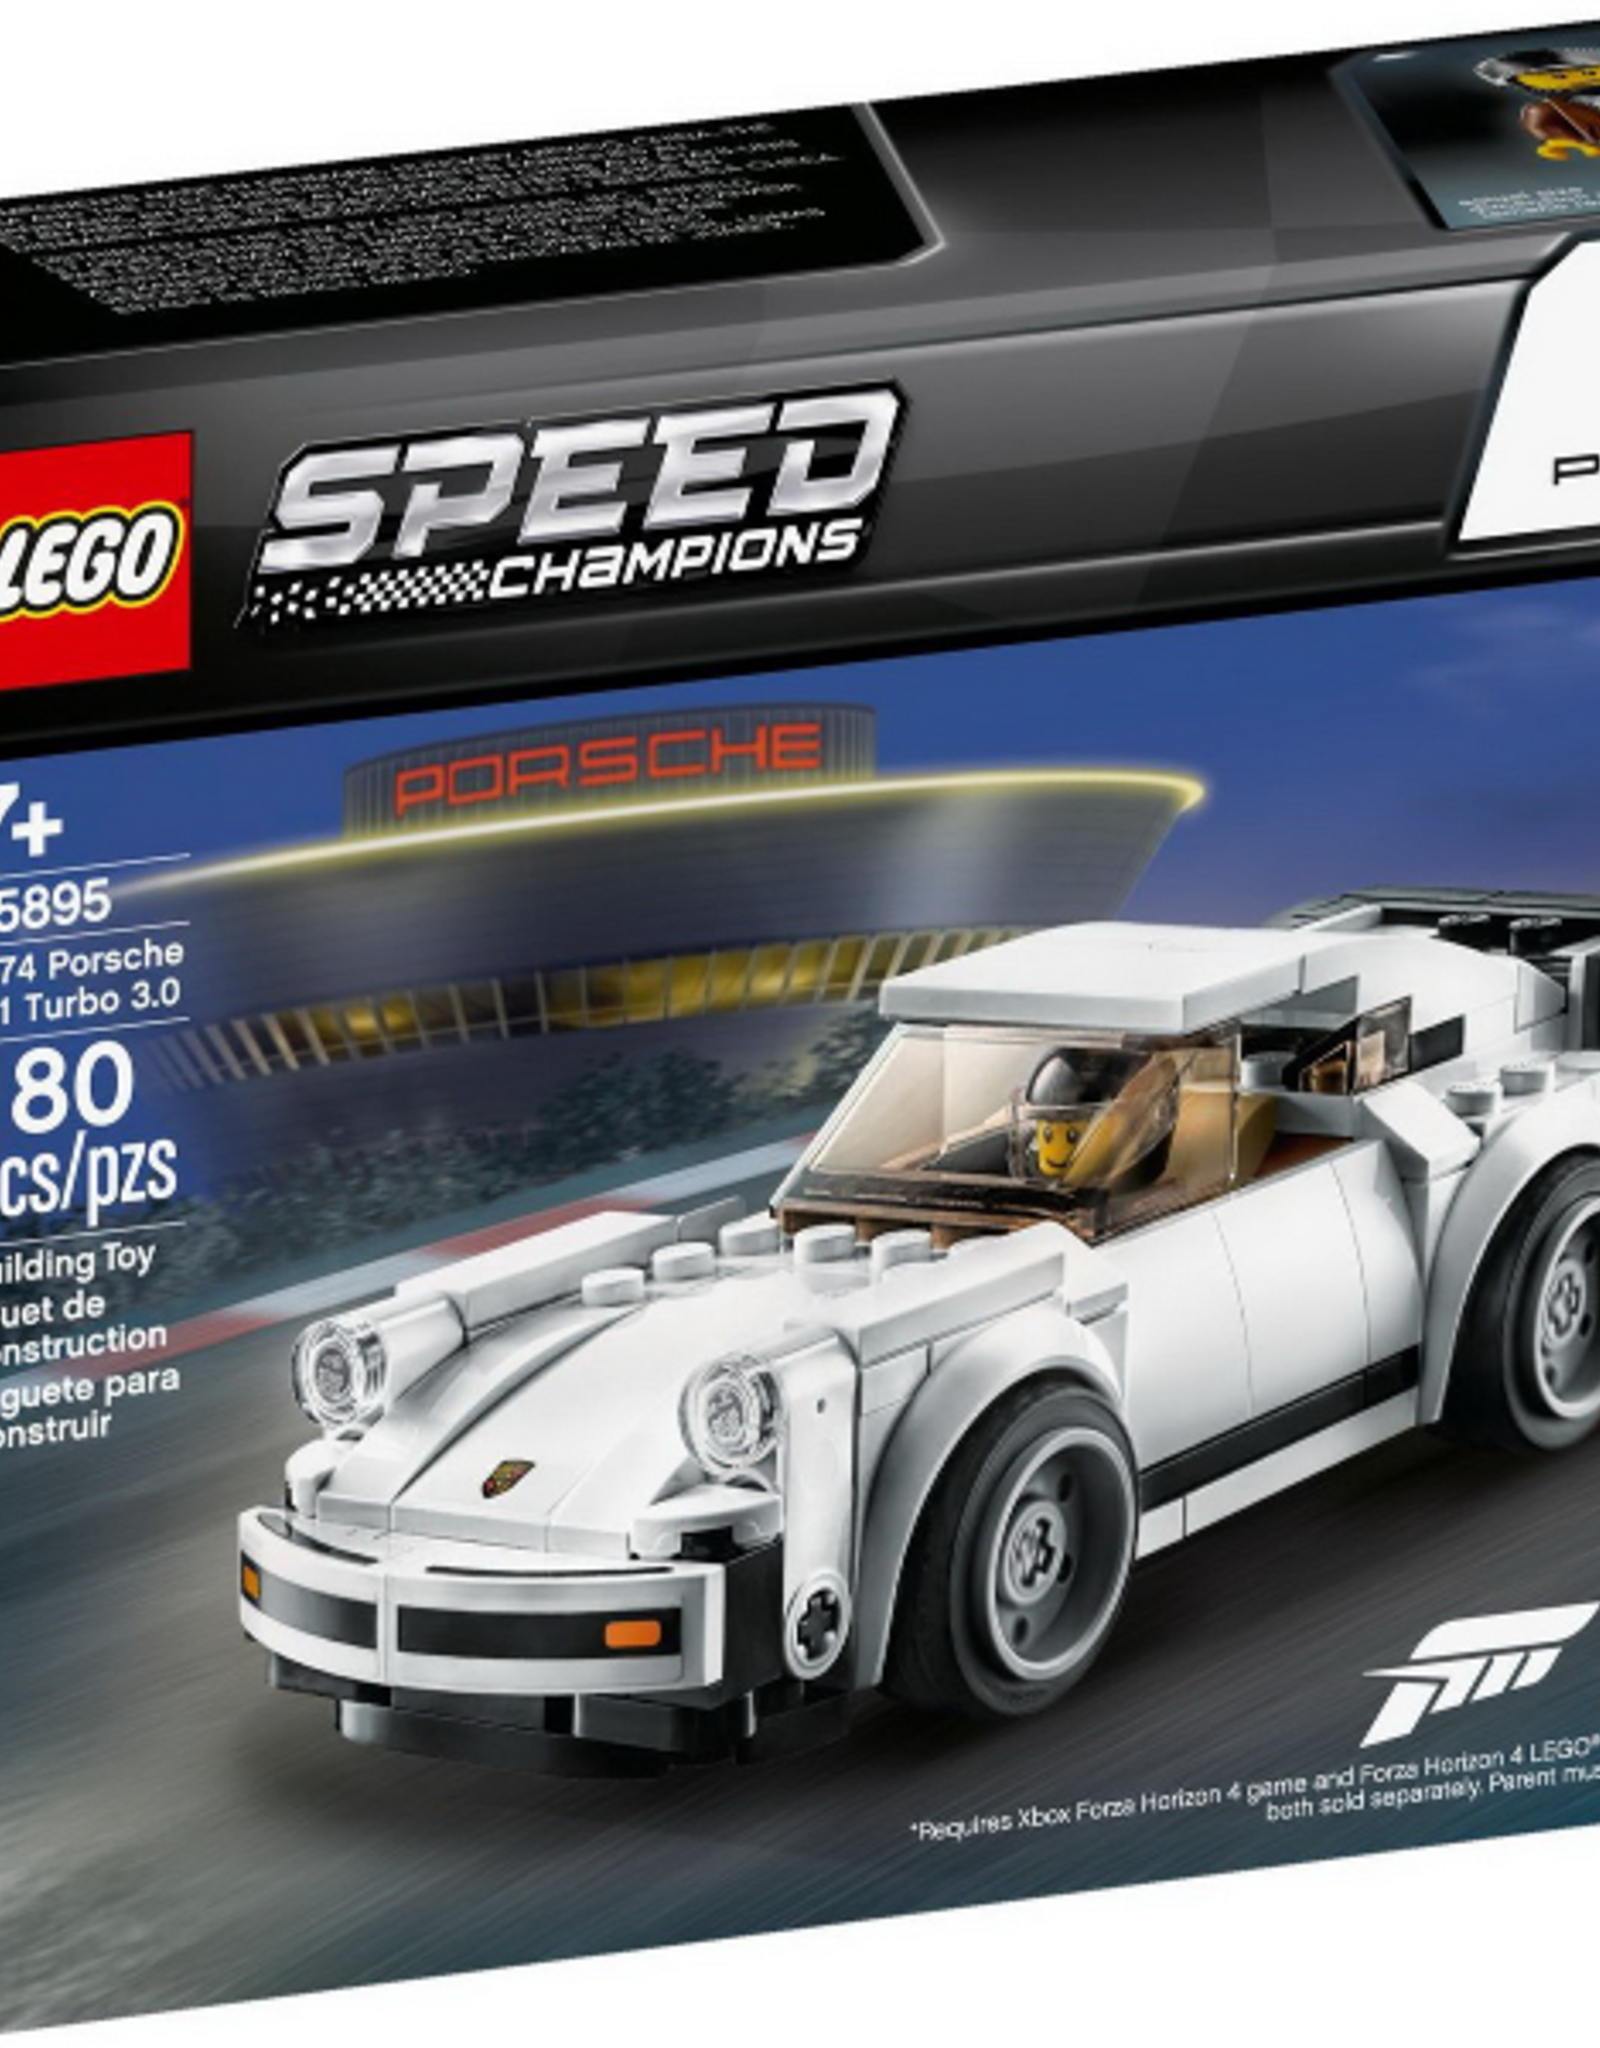 LEGO LEGO 75895 - 1974 Porsche 911 Turbo 3.0 SPEED Champions